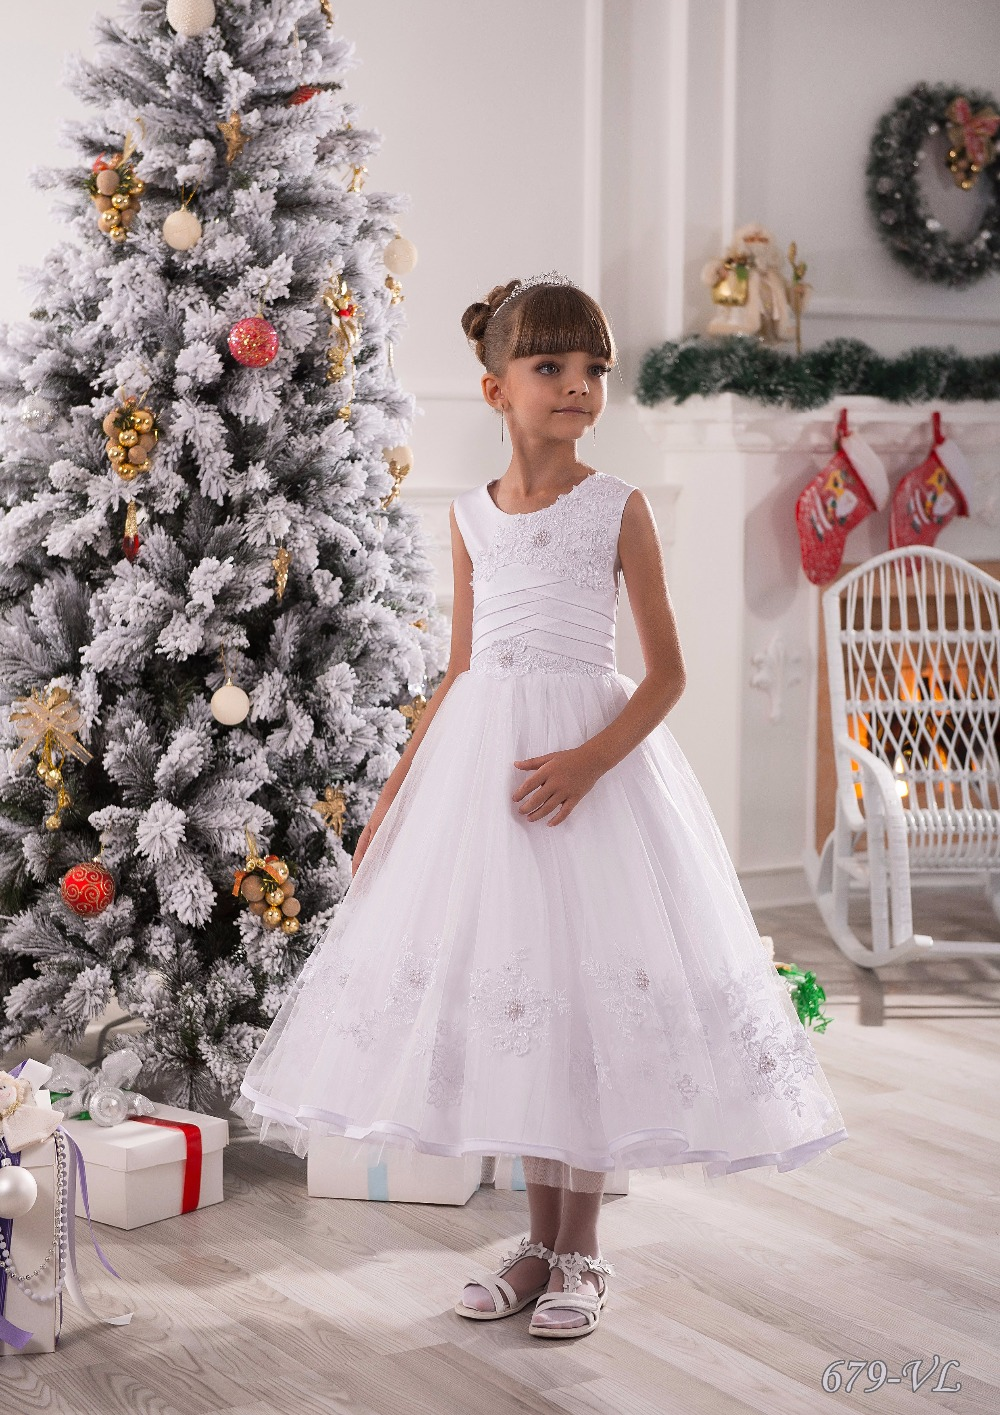 Stunning Infant Lace Appliques Sleeveless Mid-Calf Ruffle A-line Holy First Communion Kids Elegant Flower Girls Dresses 0-14 Y new holy pink flower girls dresses a line lace appliques 2017 wedding girl wear first communion dress vestidos de long sleeves